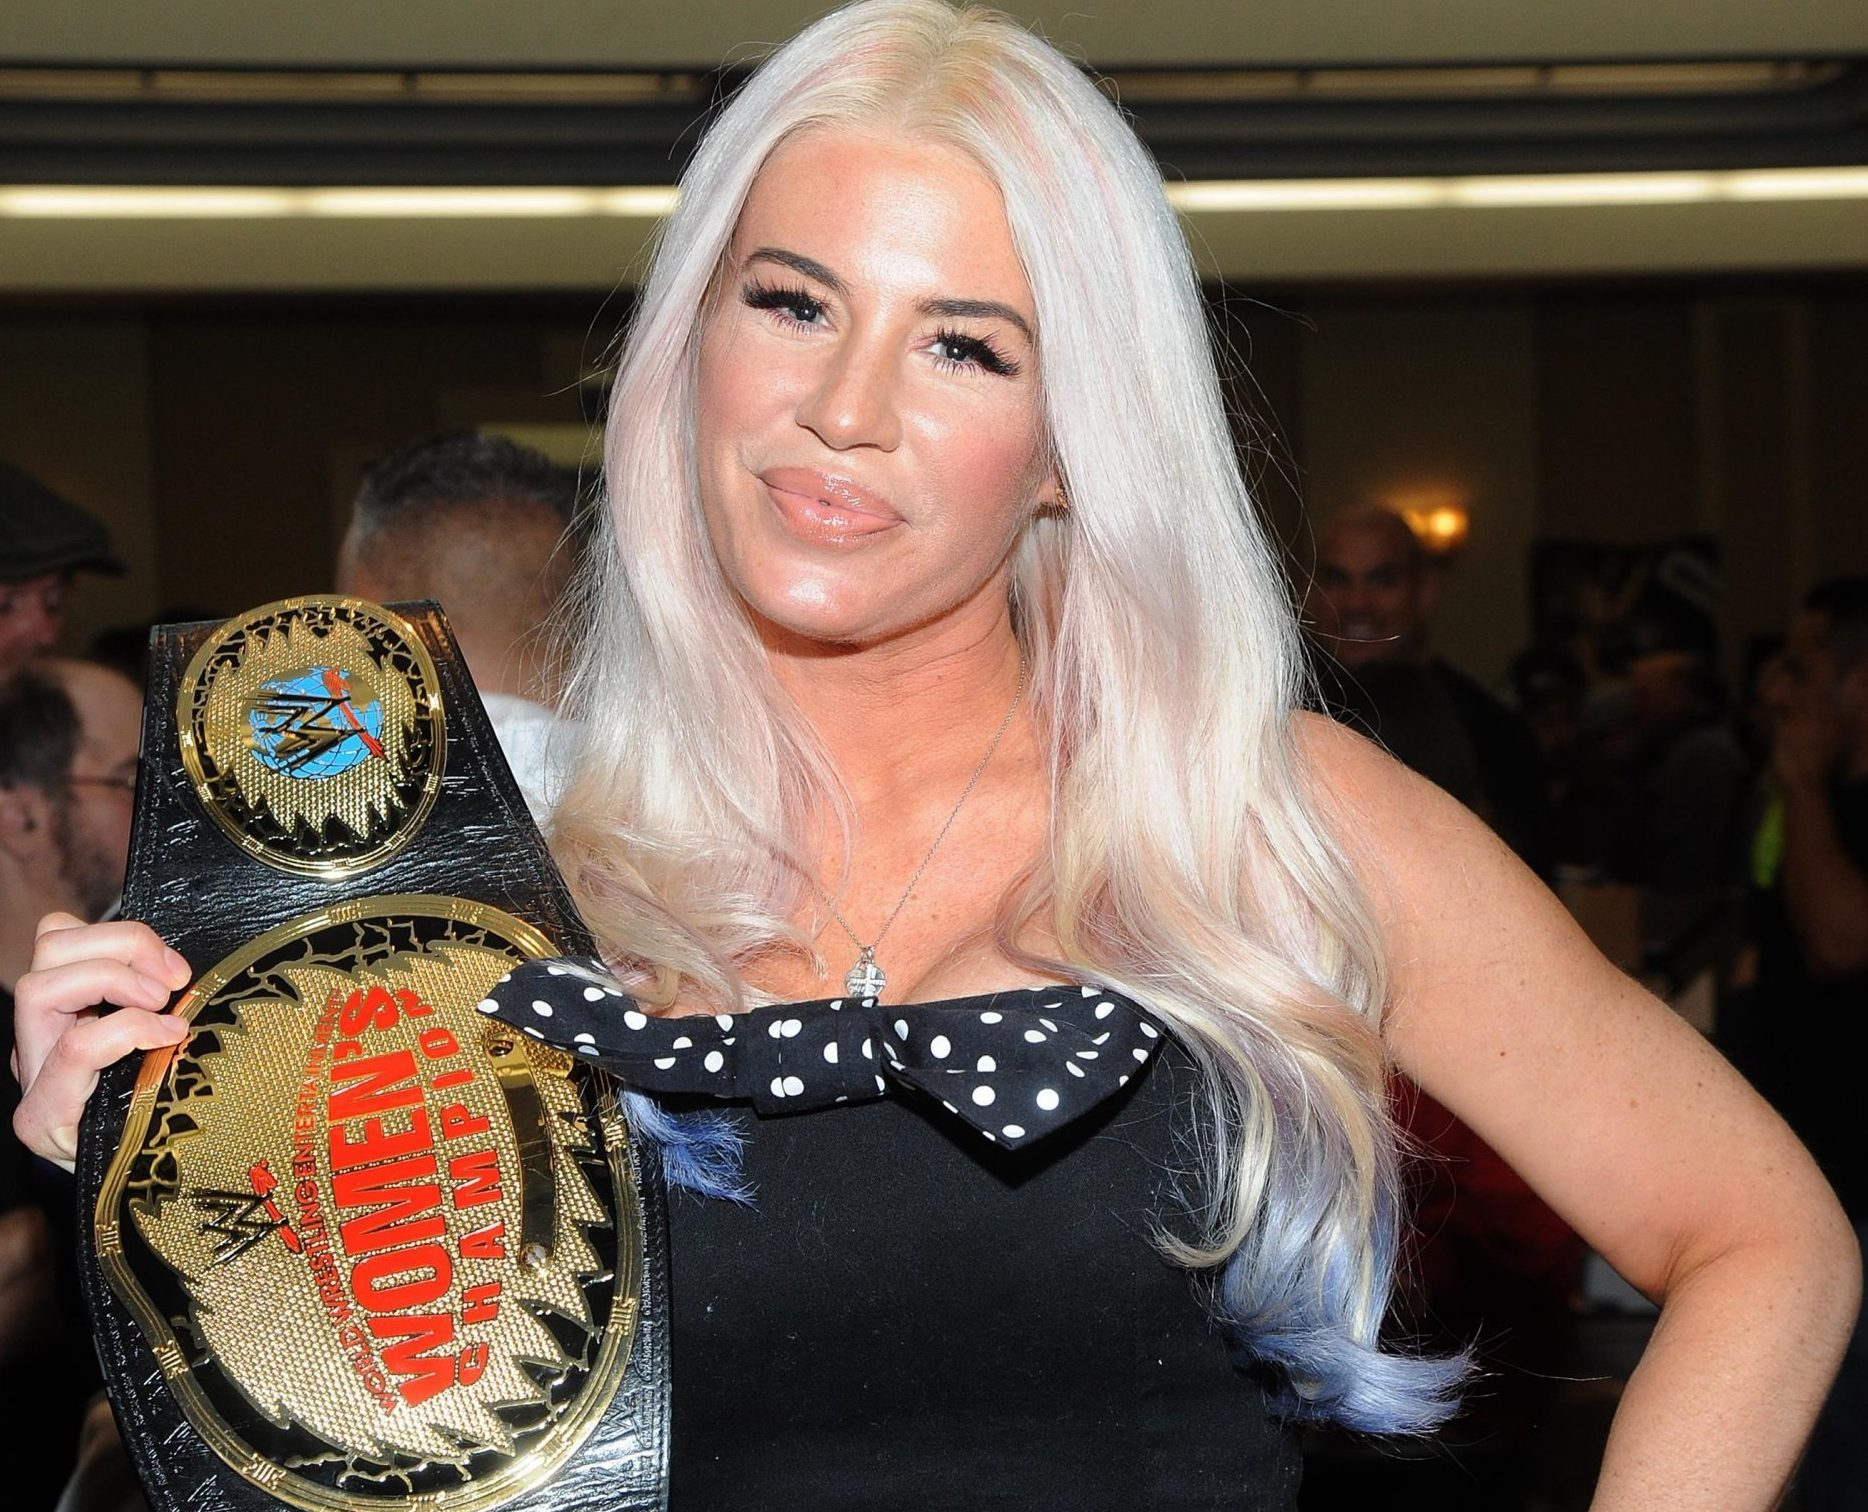 WWE star Ashley Massaro 'died by apparent suicide' after blaming her depression on multiple concussions